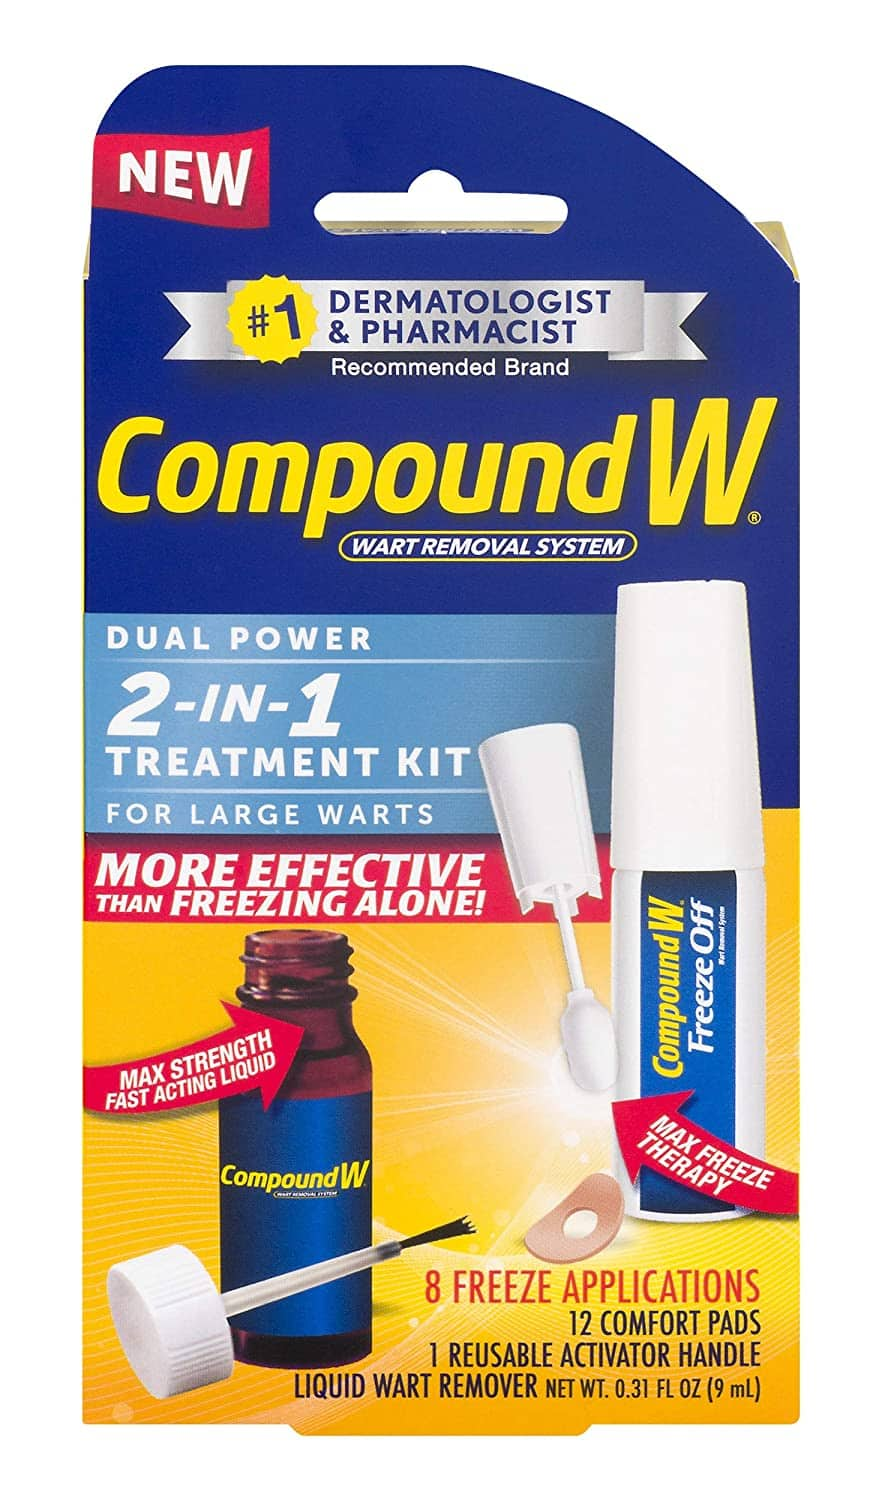 Compound W 2-in-1 Wart Removal Kit | Liquid Wart Remover | 8 Freeze Applications, $8.55 w/ S&S, Amazon